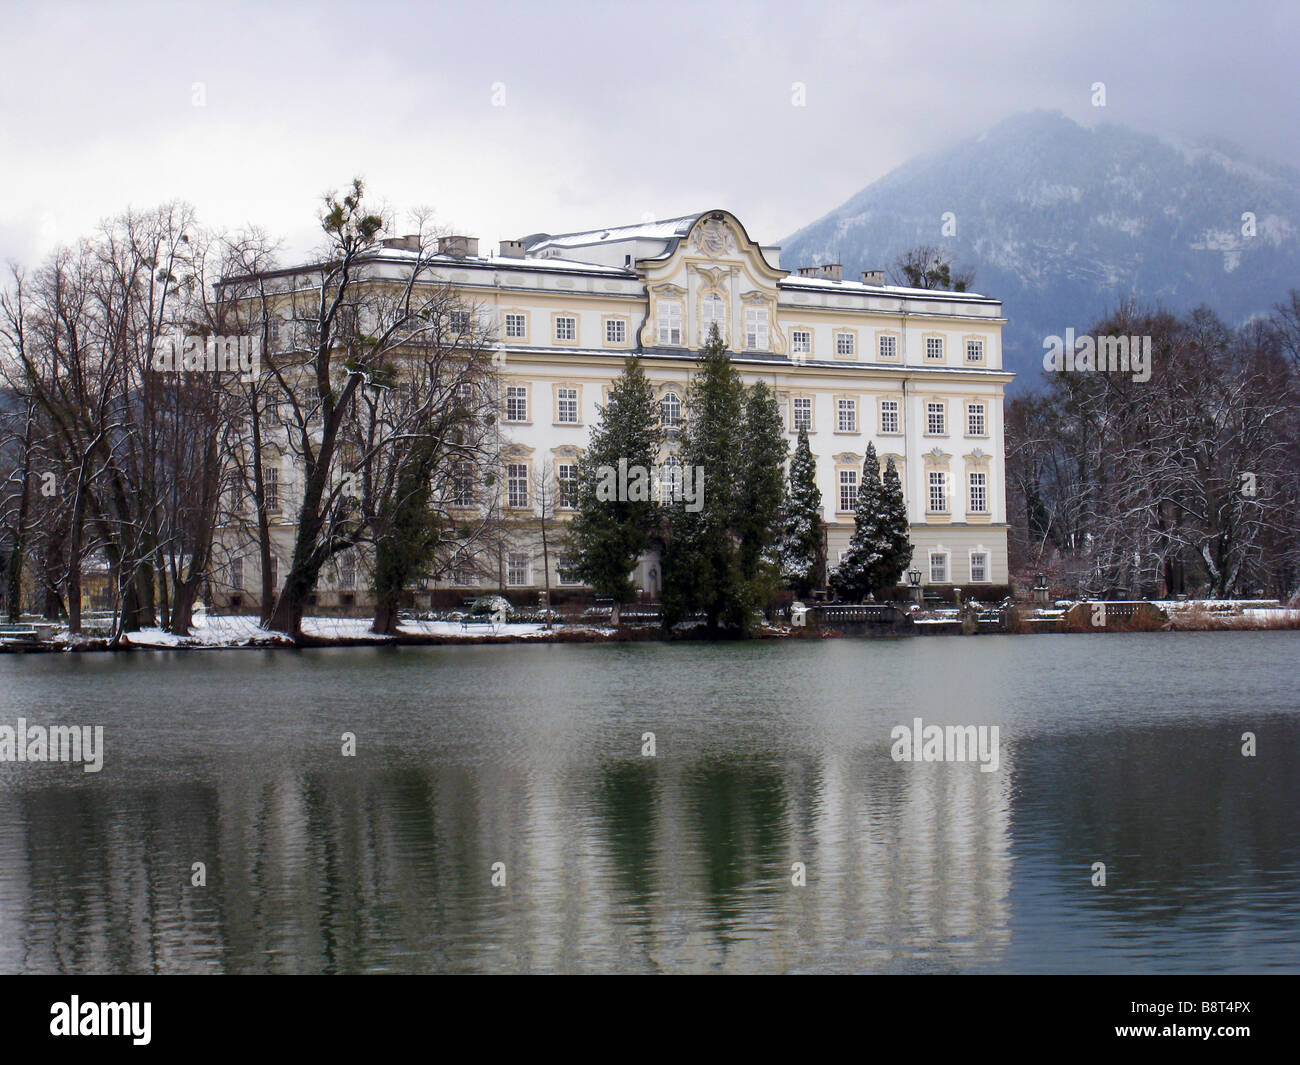 Von Trapp family house from The Sound of Music in Salzburg, Austria - Stock Image